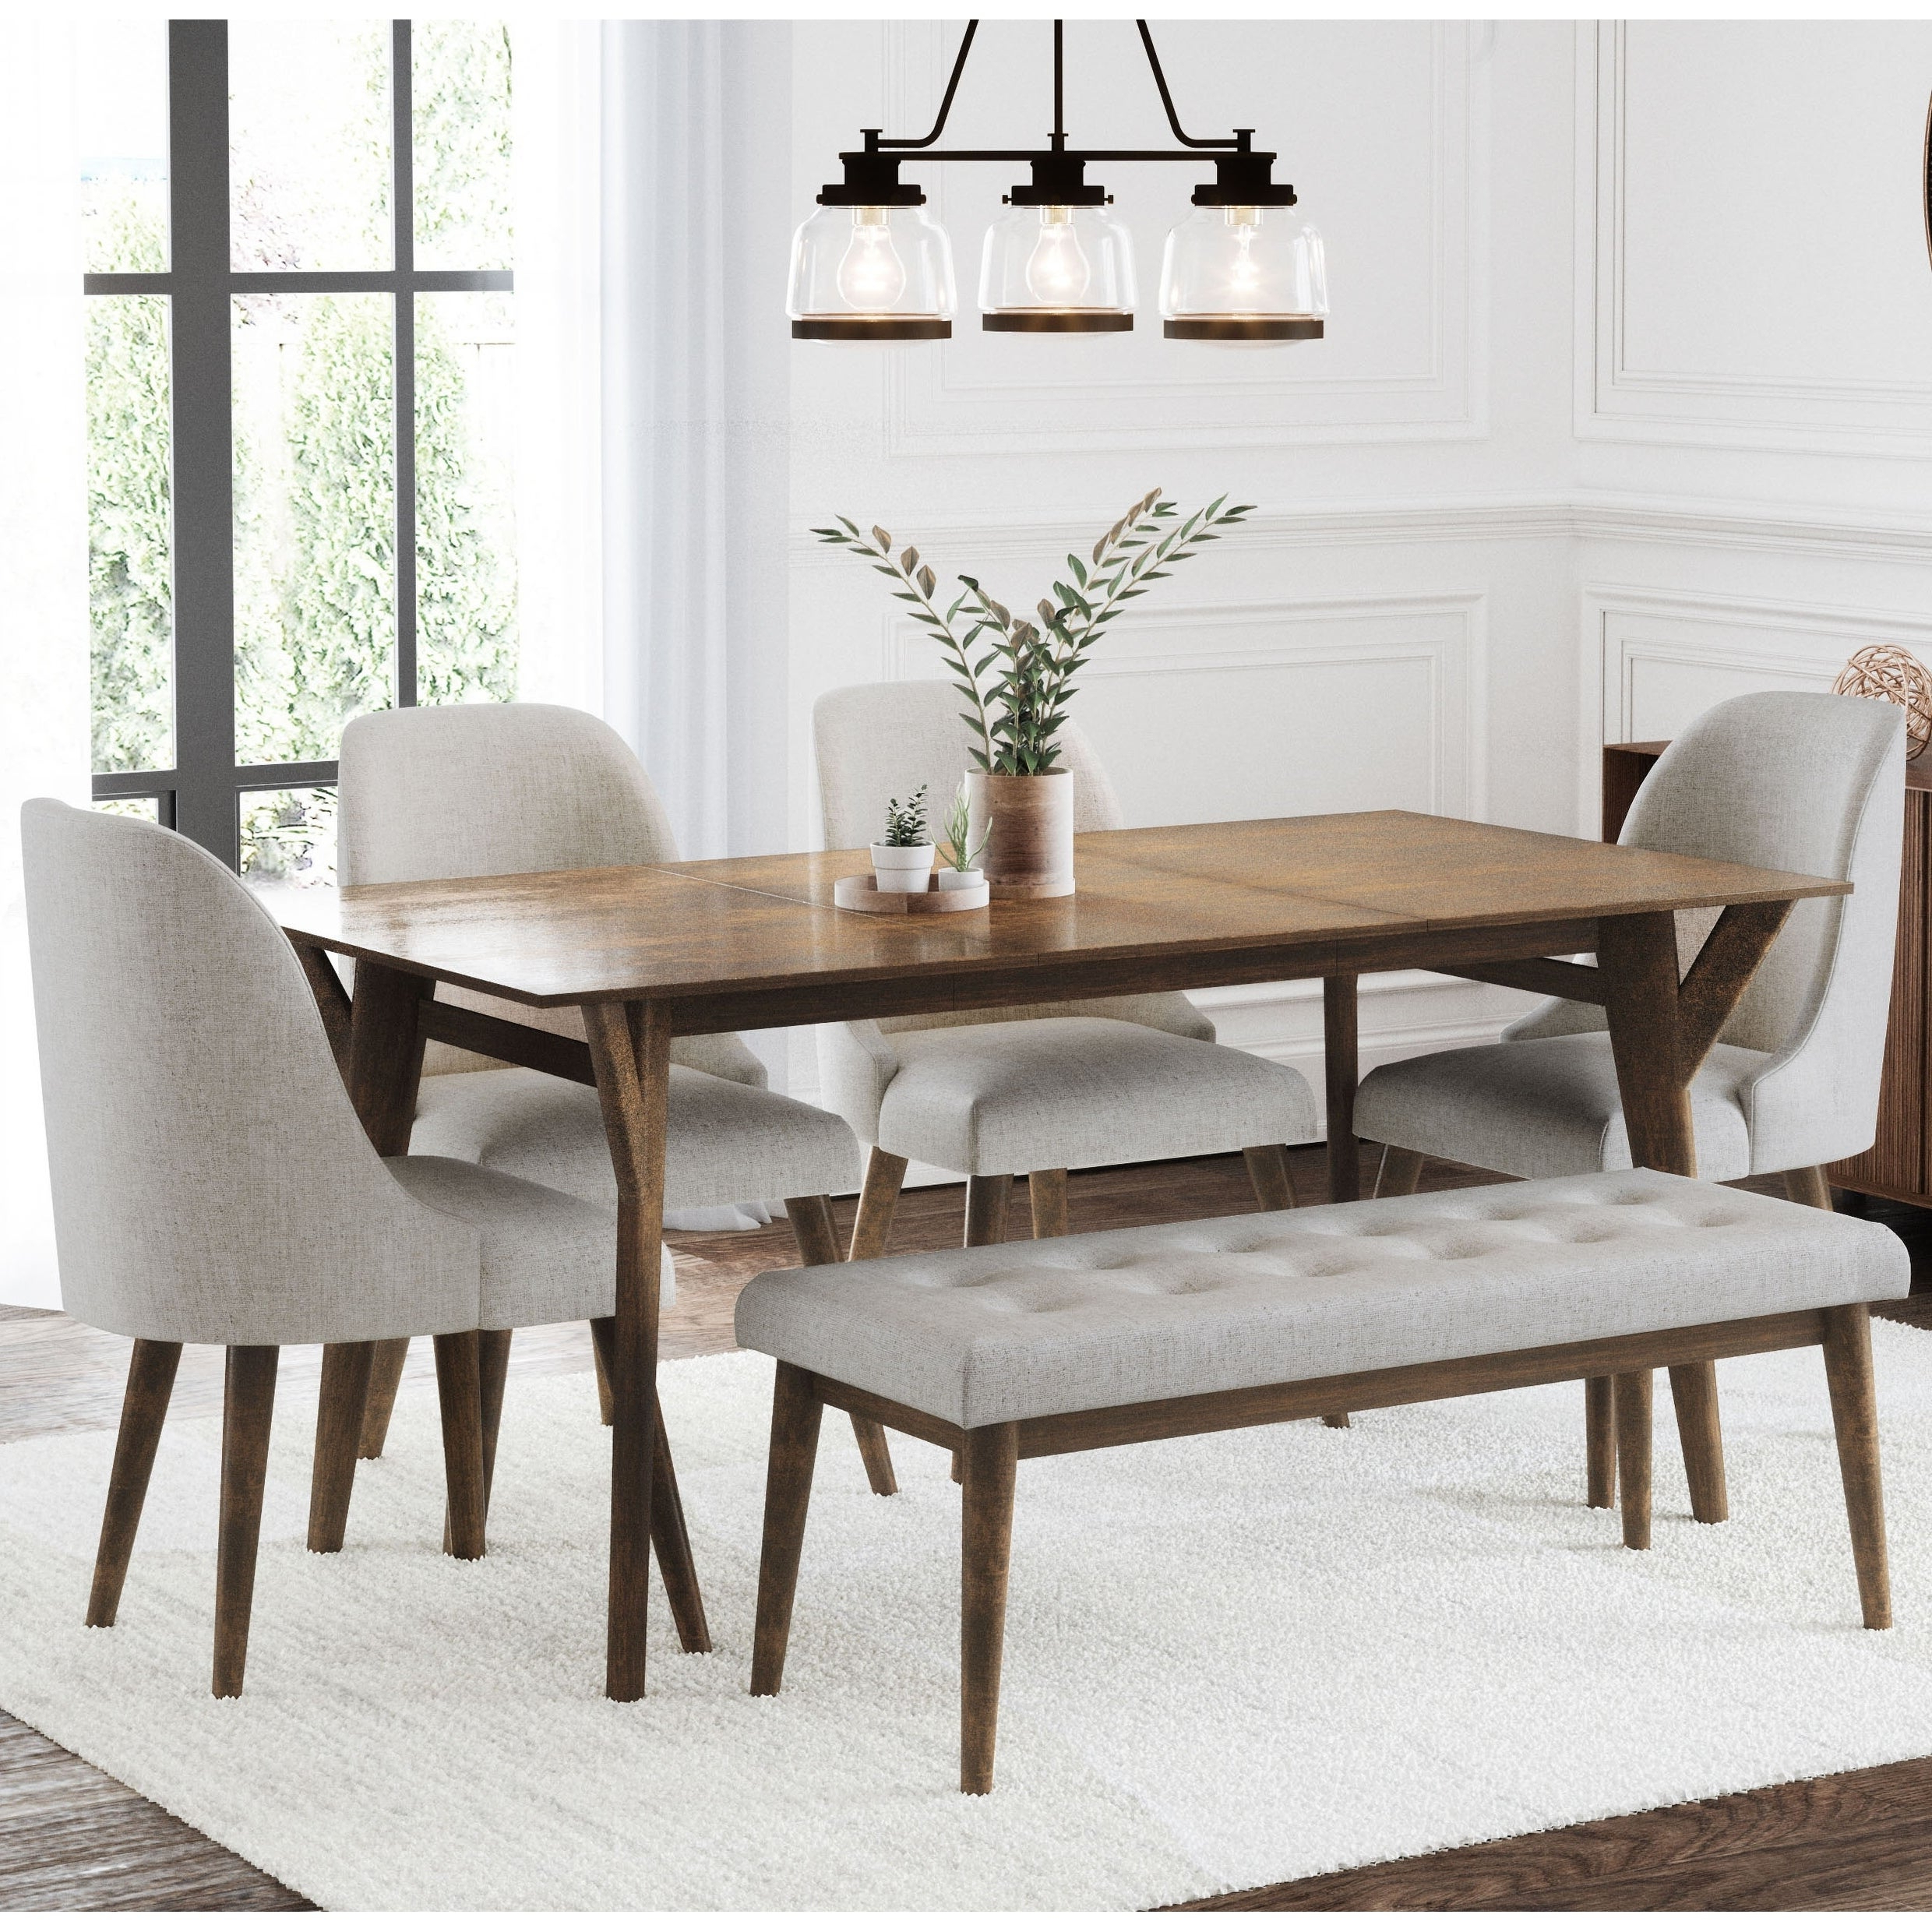 2018 Osterman 6 Piece Extendable Dining Sets (Set Of 6) Intended For Buy 6 Piece Sets Kitchen & Dining Room Sets Online At Overstock (View 1 of 20)